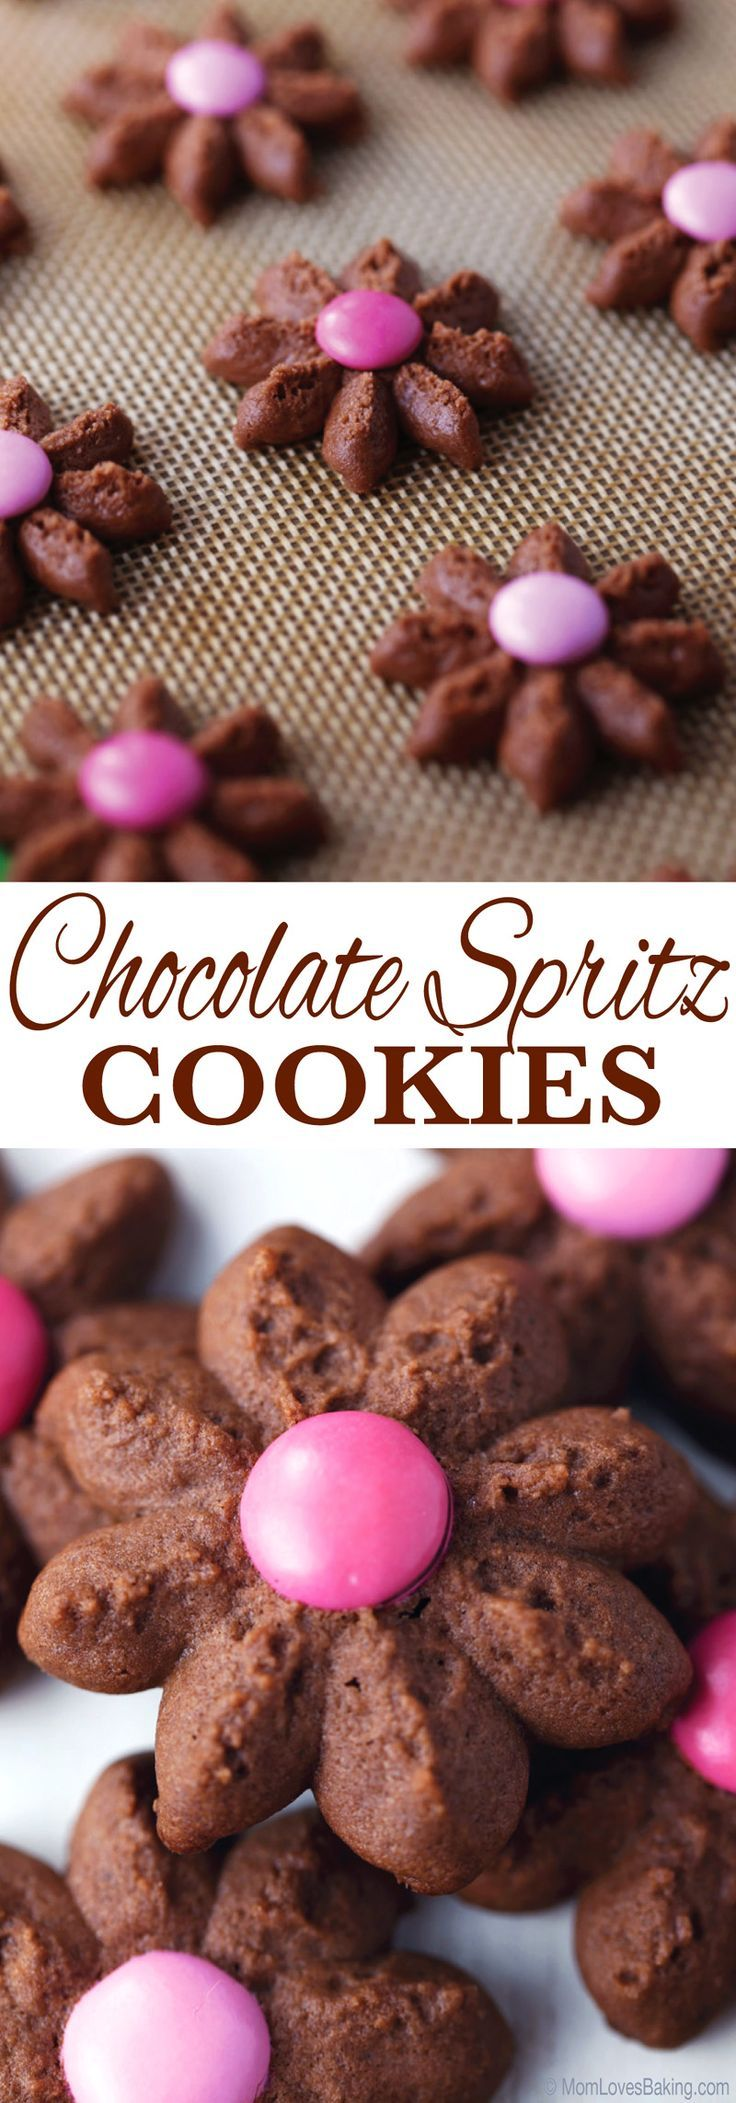 Chocolate Spritz Cookies - buttery, chocolatey and delicious. Easy to make with a cookie press and perfect for a ladies tea or birthday party. Find the recipe on http://MomLovesBaking.com